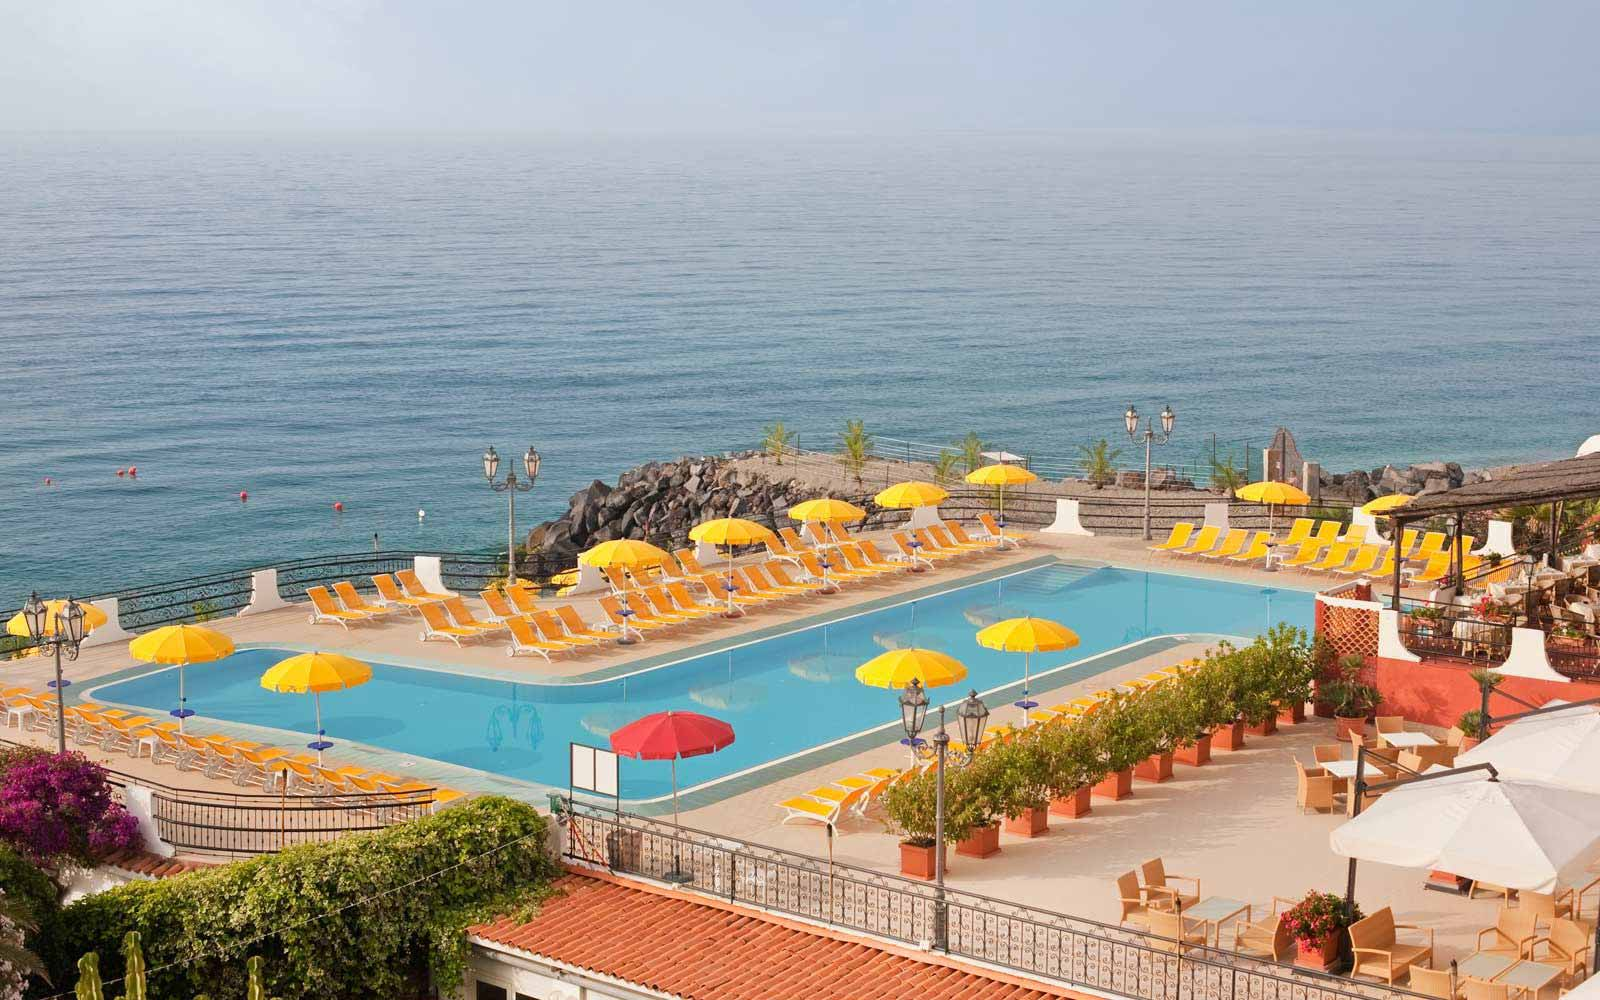 The pool at Hilton Giardini Naxos